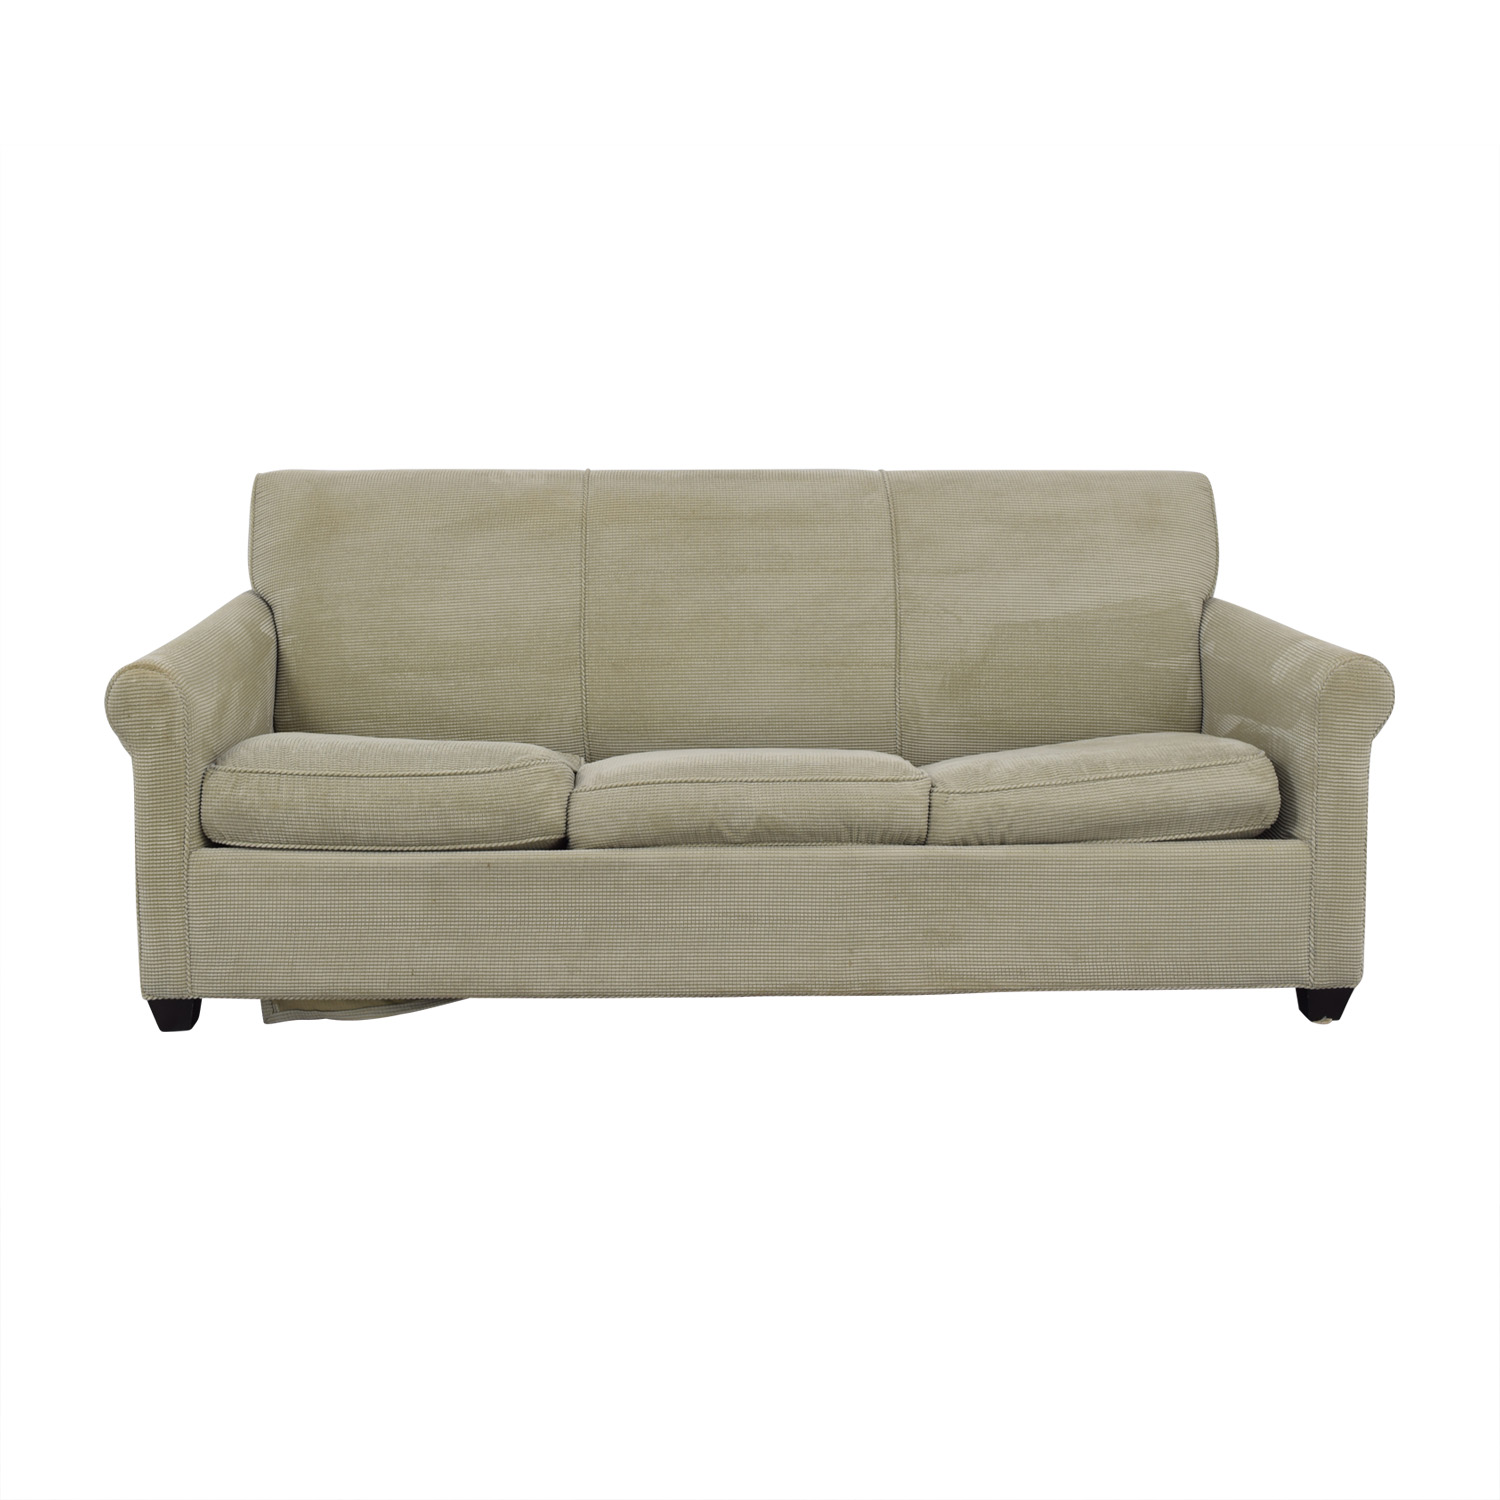 buy Crate & Barrel Gaines Full Sleeper Sofa Crate & Barrel